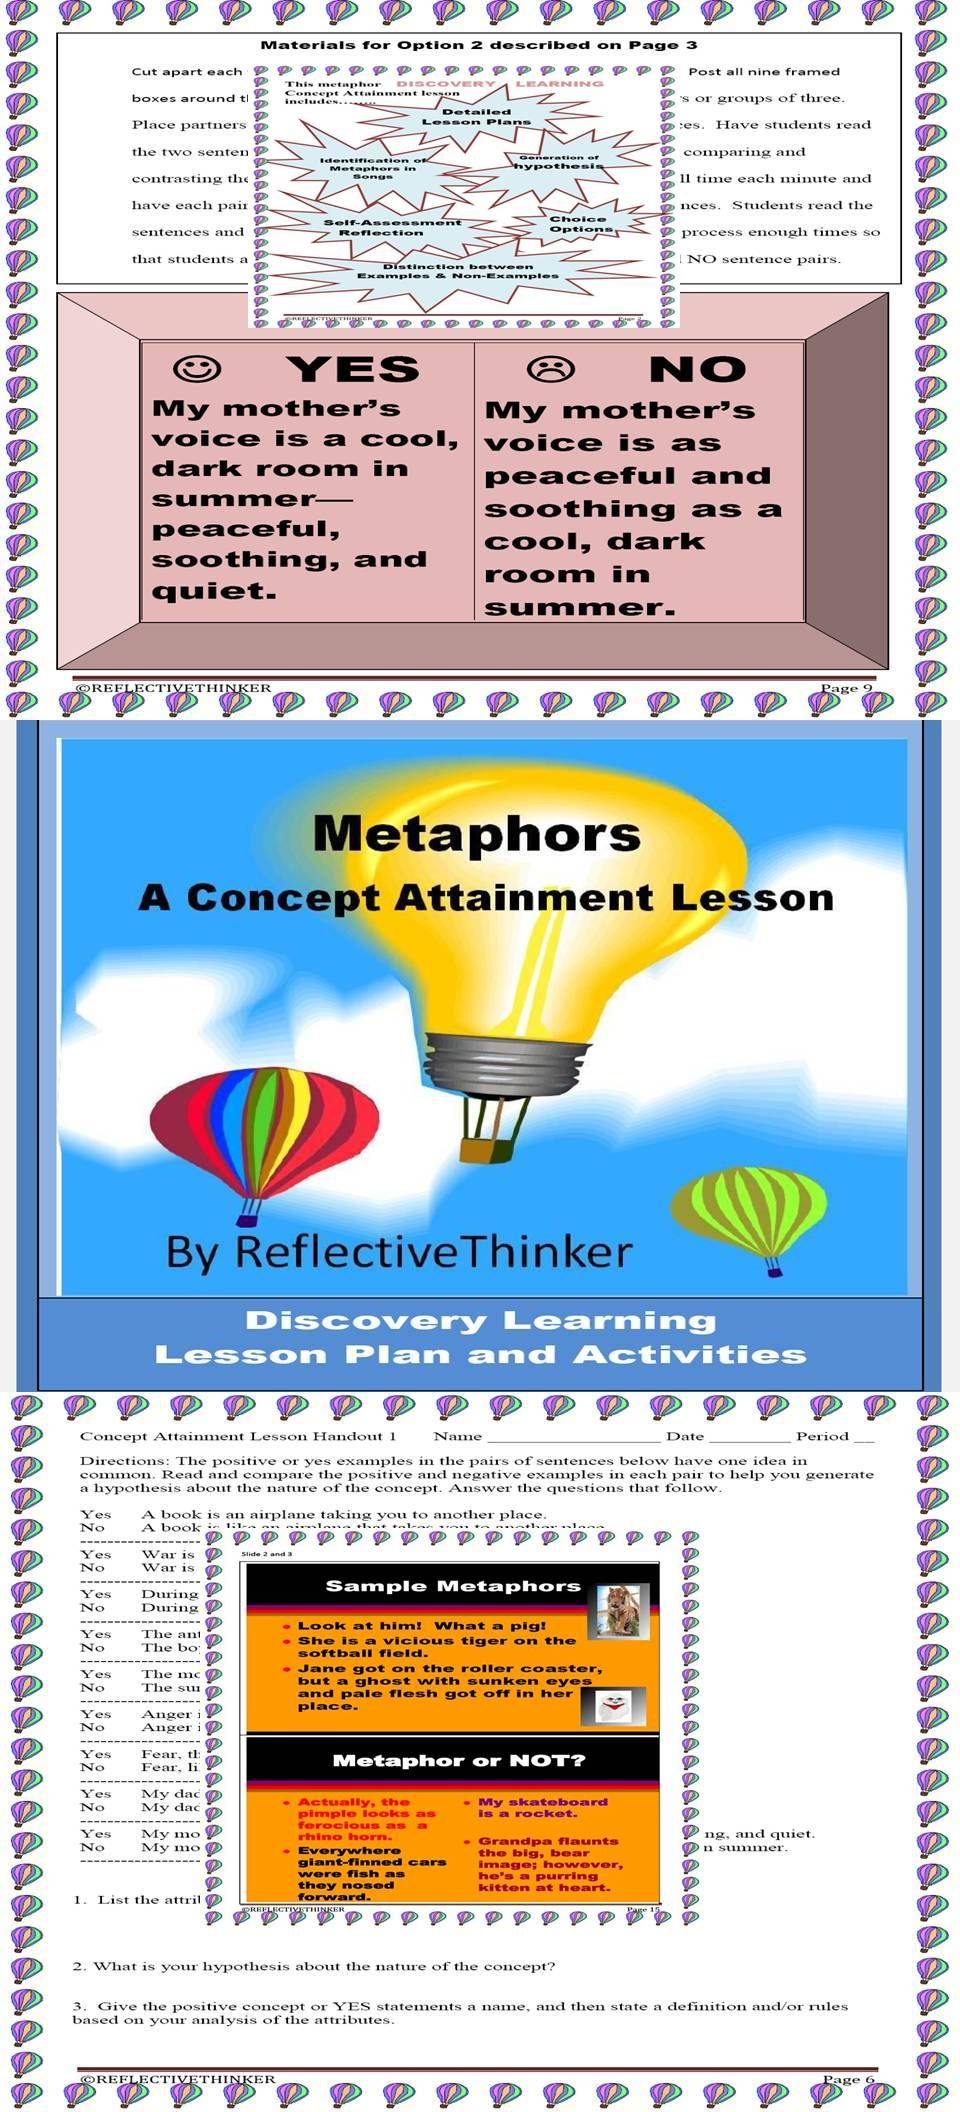 Metaphor Lesson Plans Activities Discovery Learning Concept